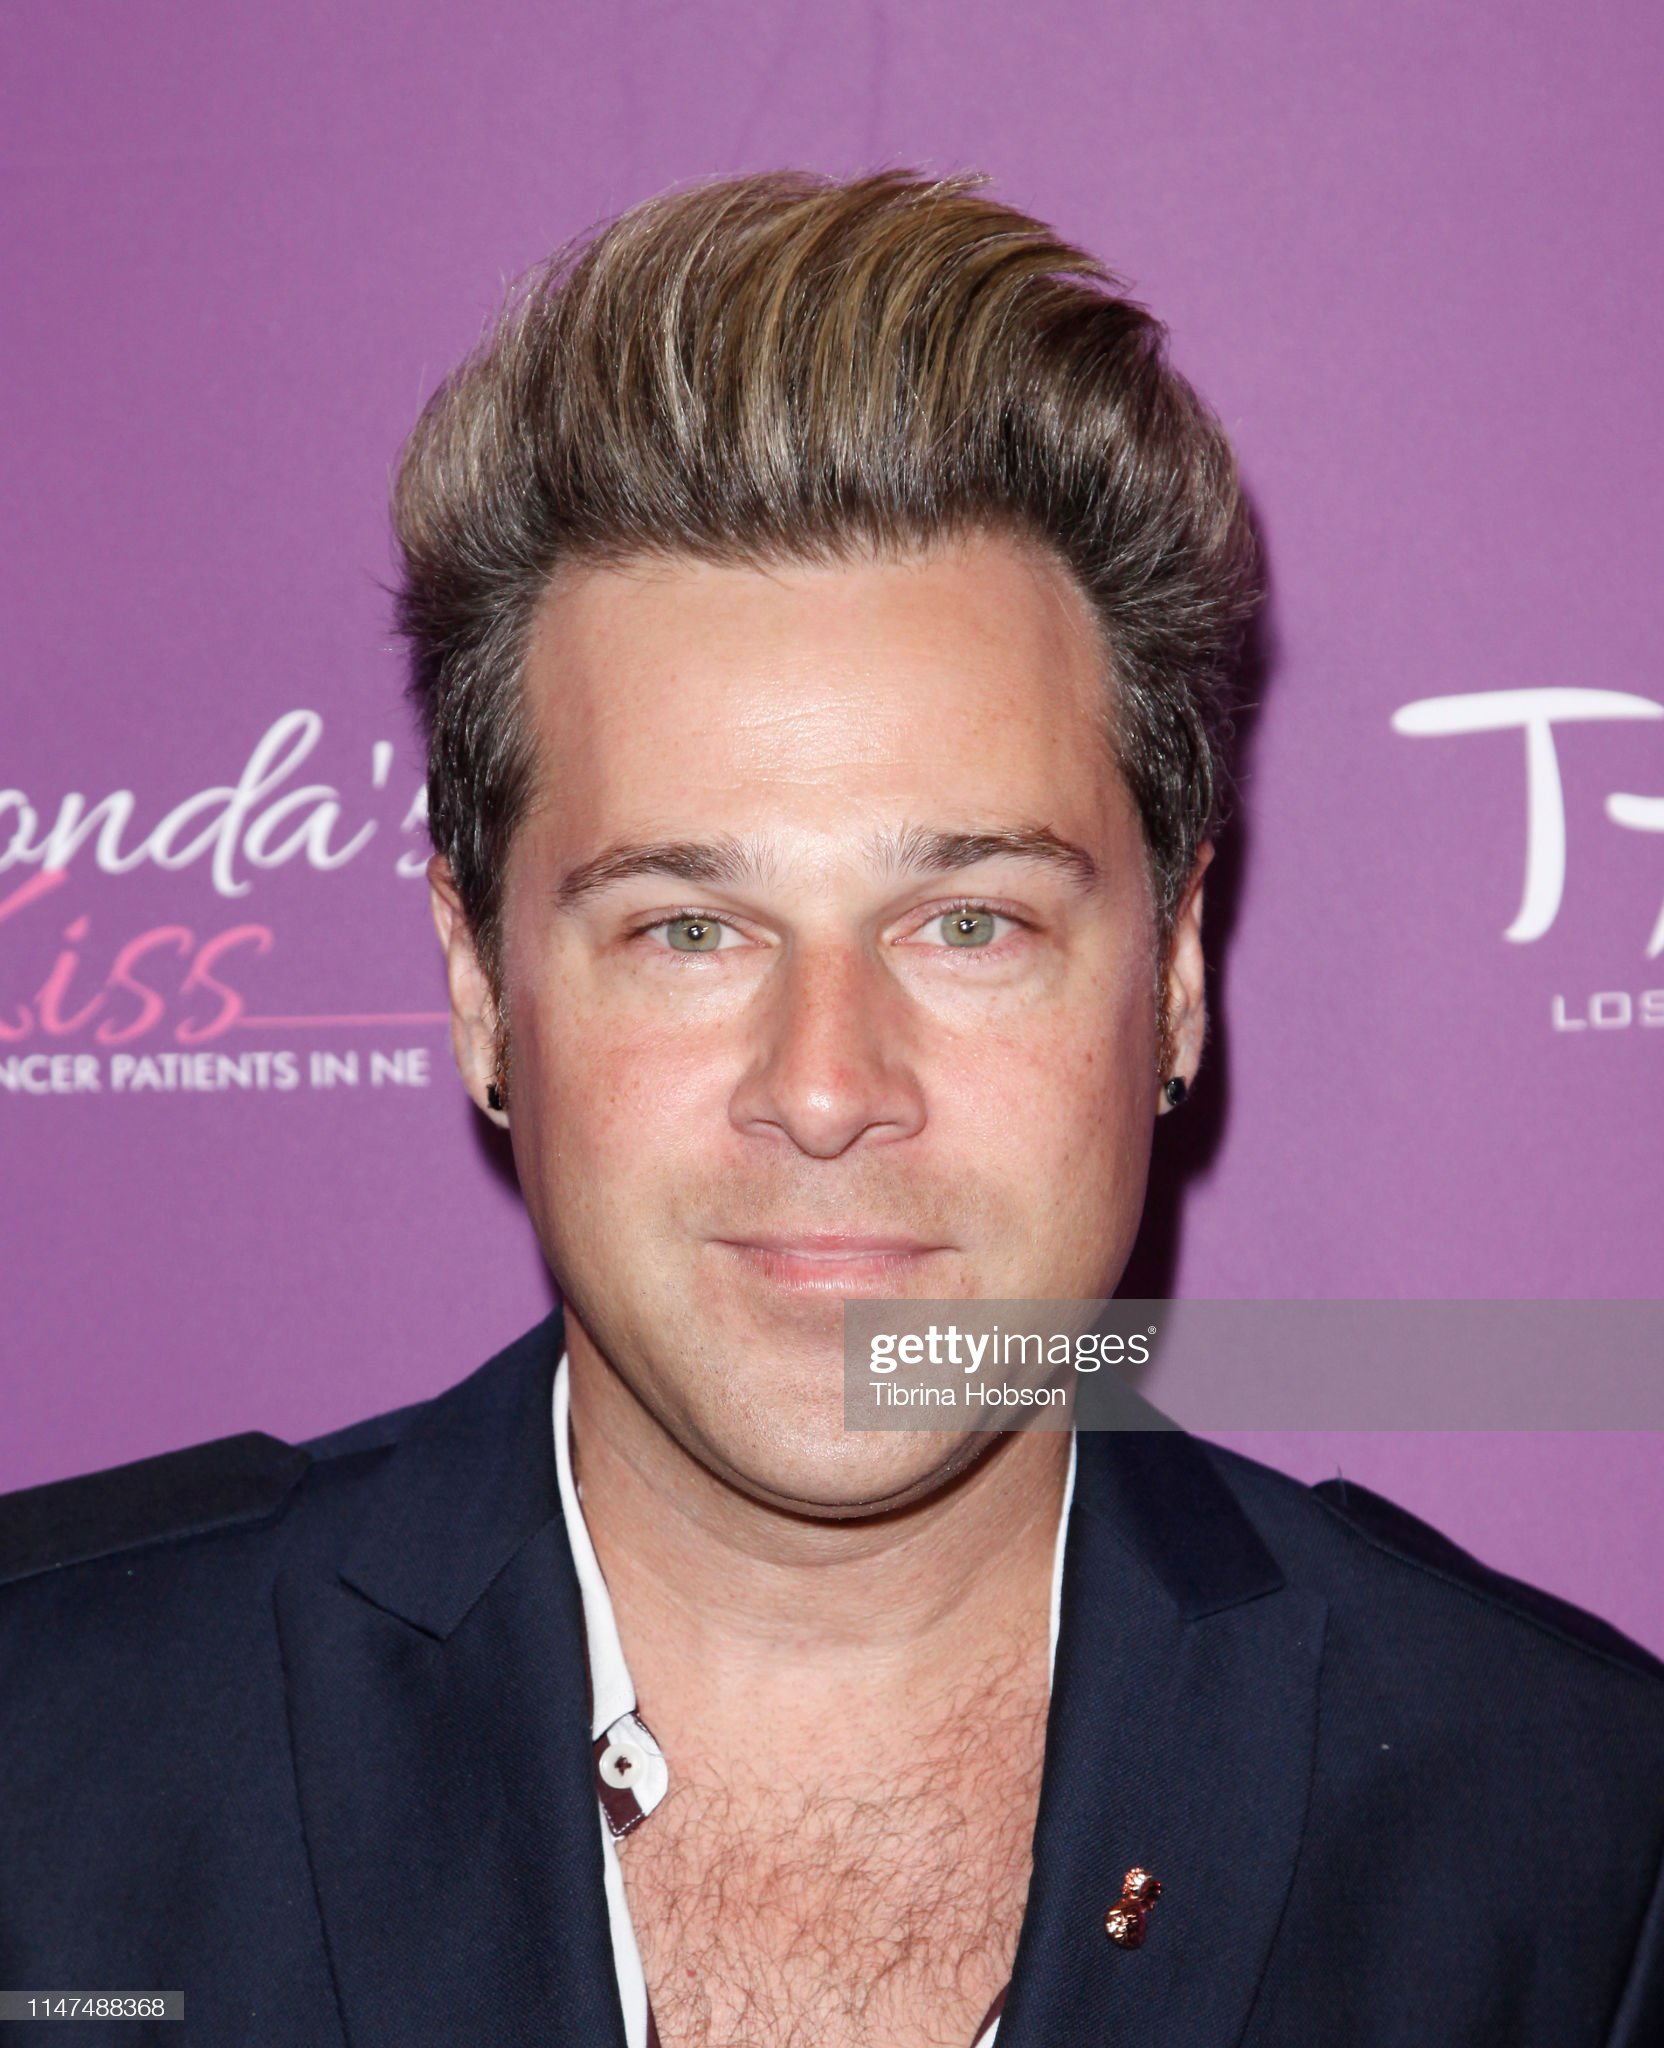 Ojos verdes - Famosas y famosos con los ojos de color VERDE Ryan-cabrera-attends-rhondas-kiss-good-fortune-gala-at-tao-on-may-06-picture-id1147488368?s=2048x2048